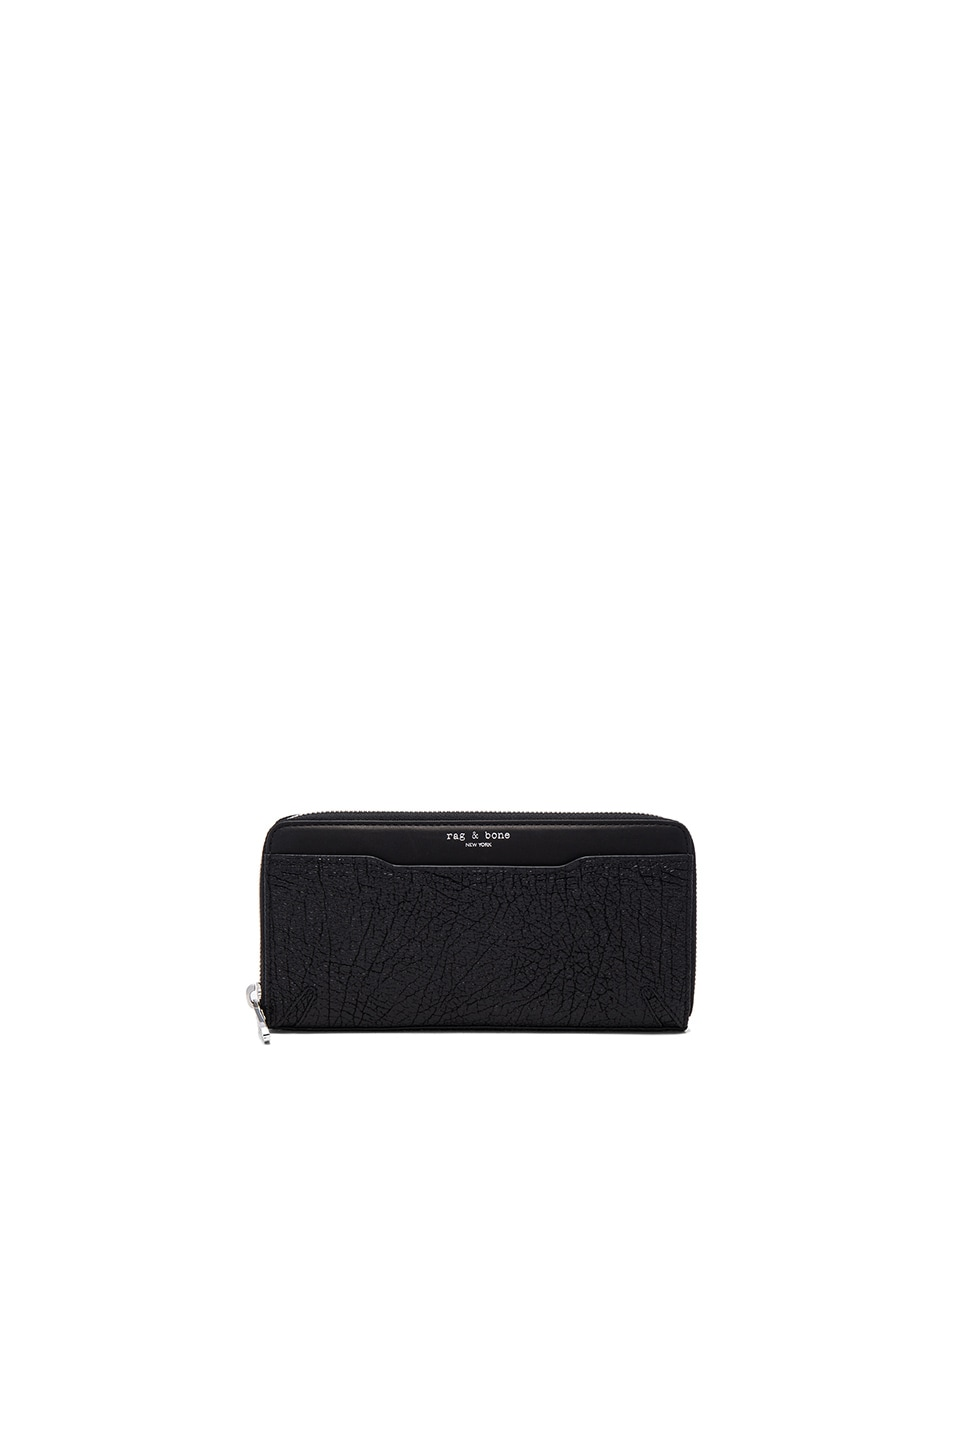 Rag & Bone Crosby Continental Wallet in Black Crackle